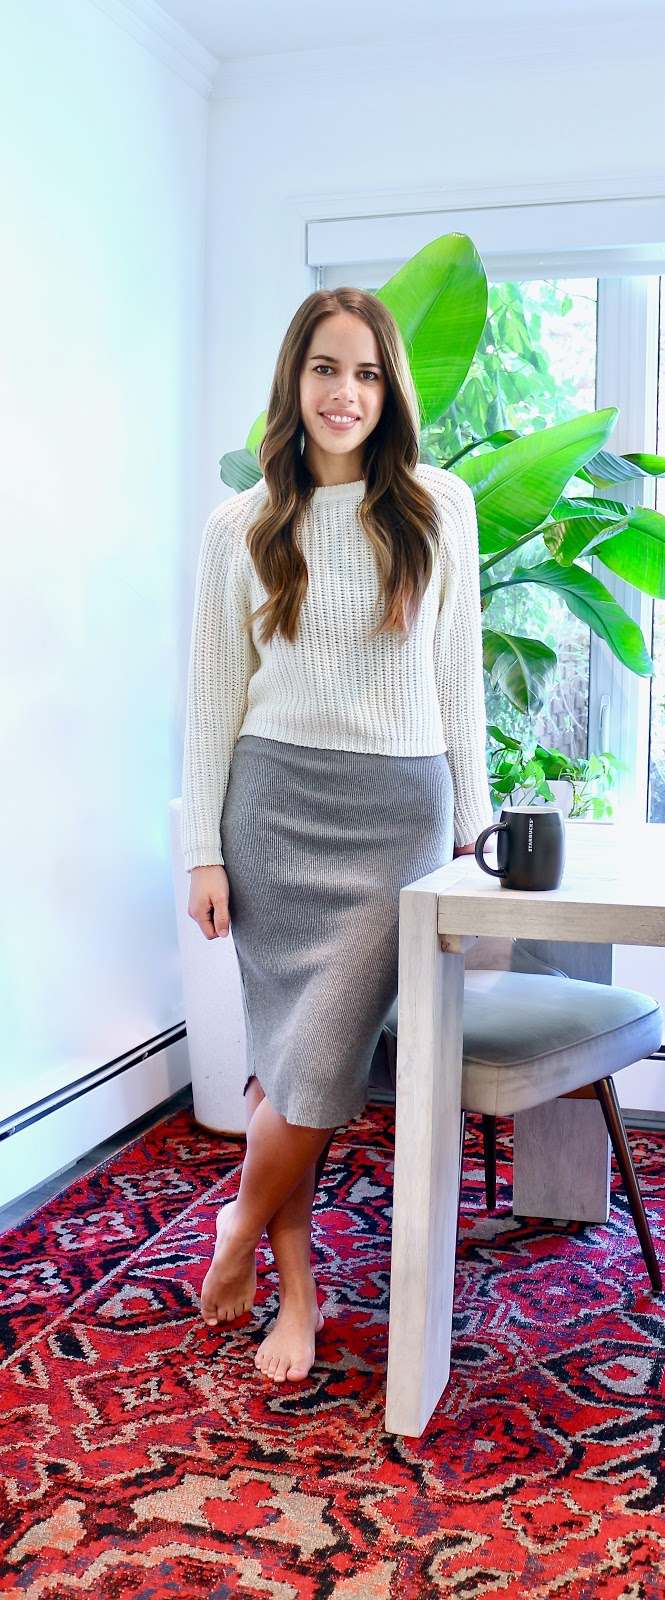 Jules in Flats - Ribbed Midi Dress with Cropped Sweater (Easy Work from Home Outfit).jpeg